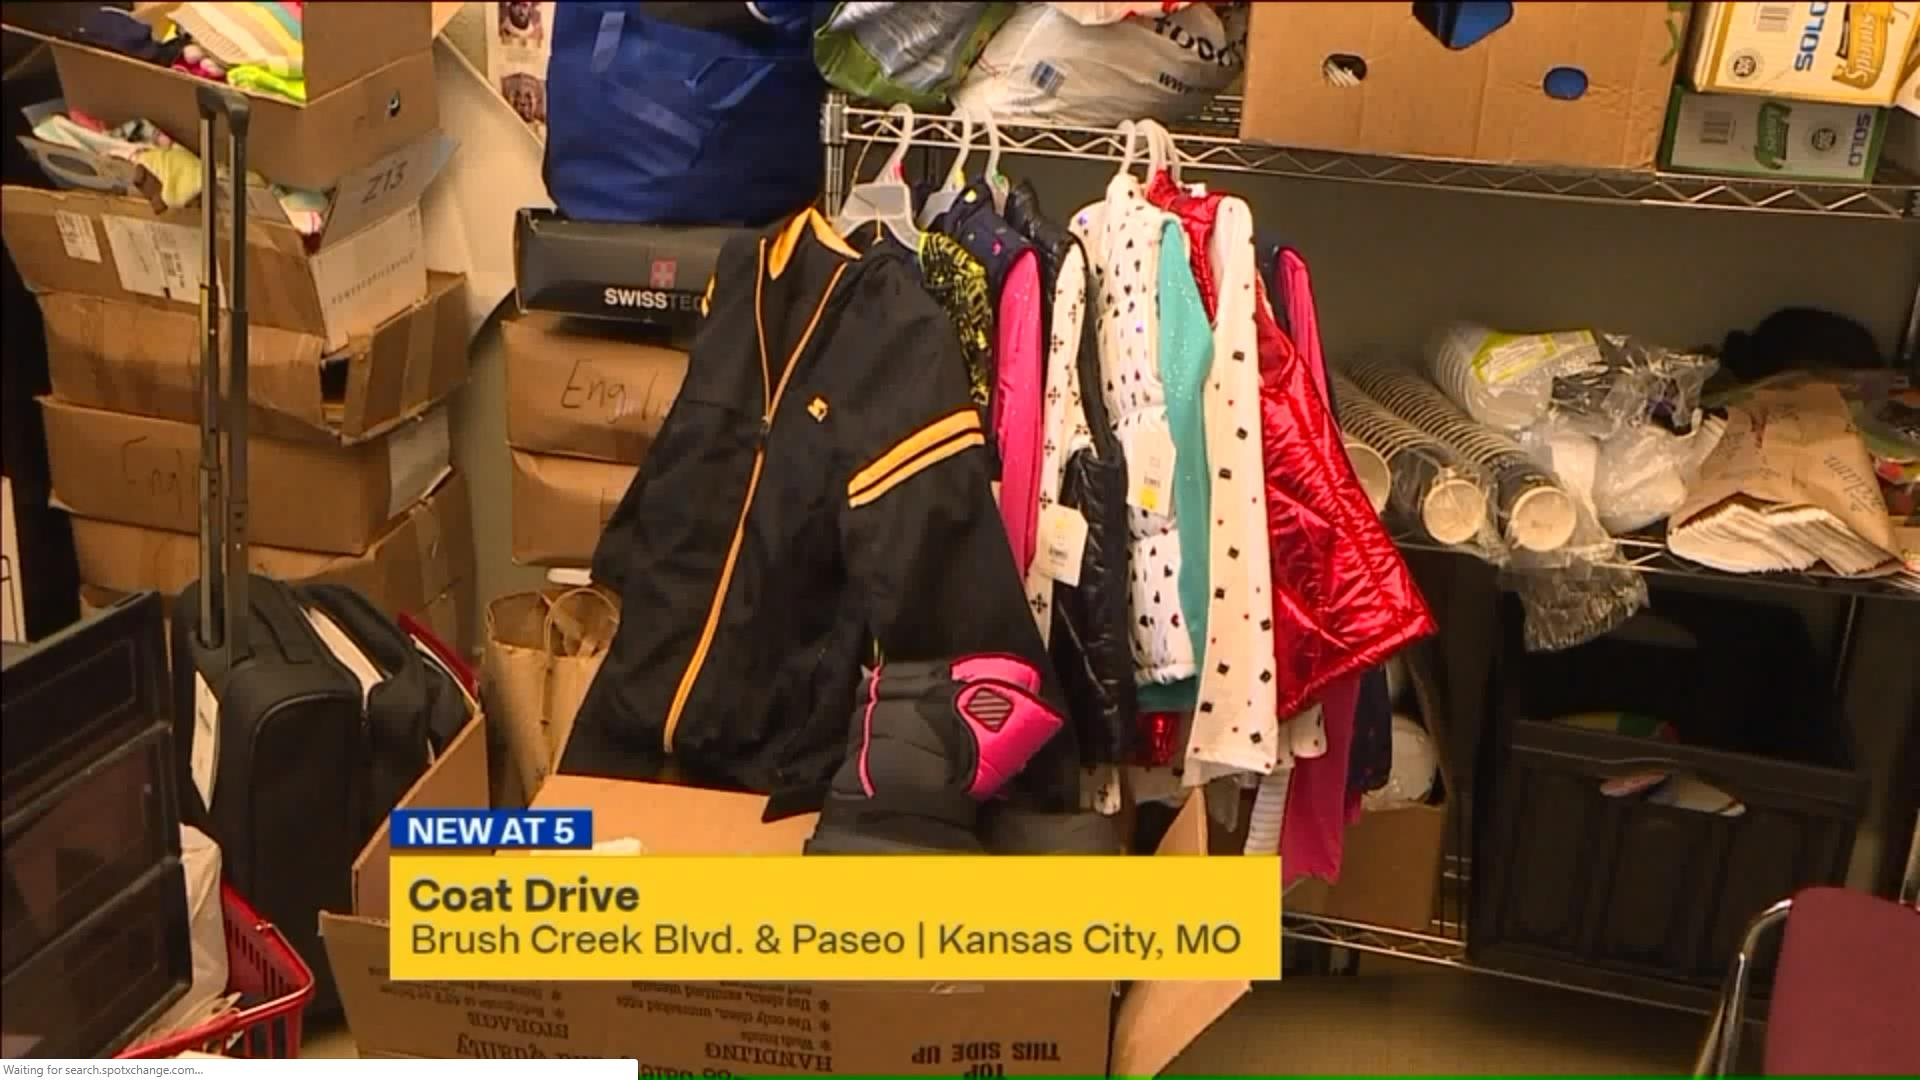 Jewish Vocational Service in Kansas City holding coat drive for refugees